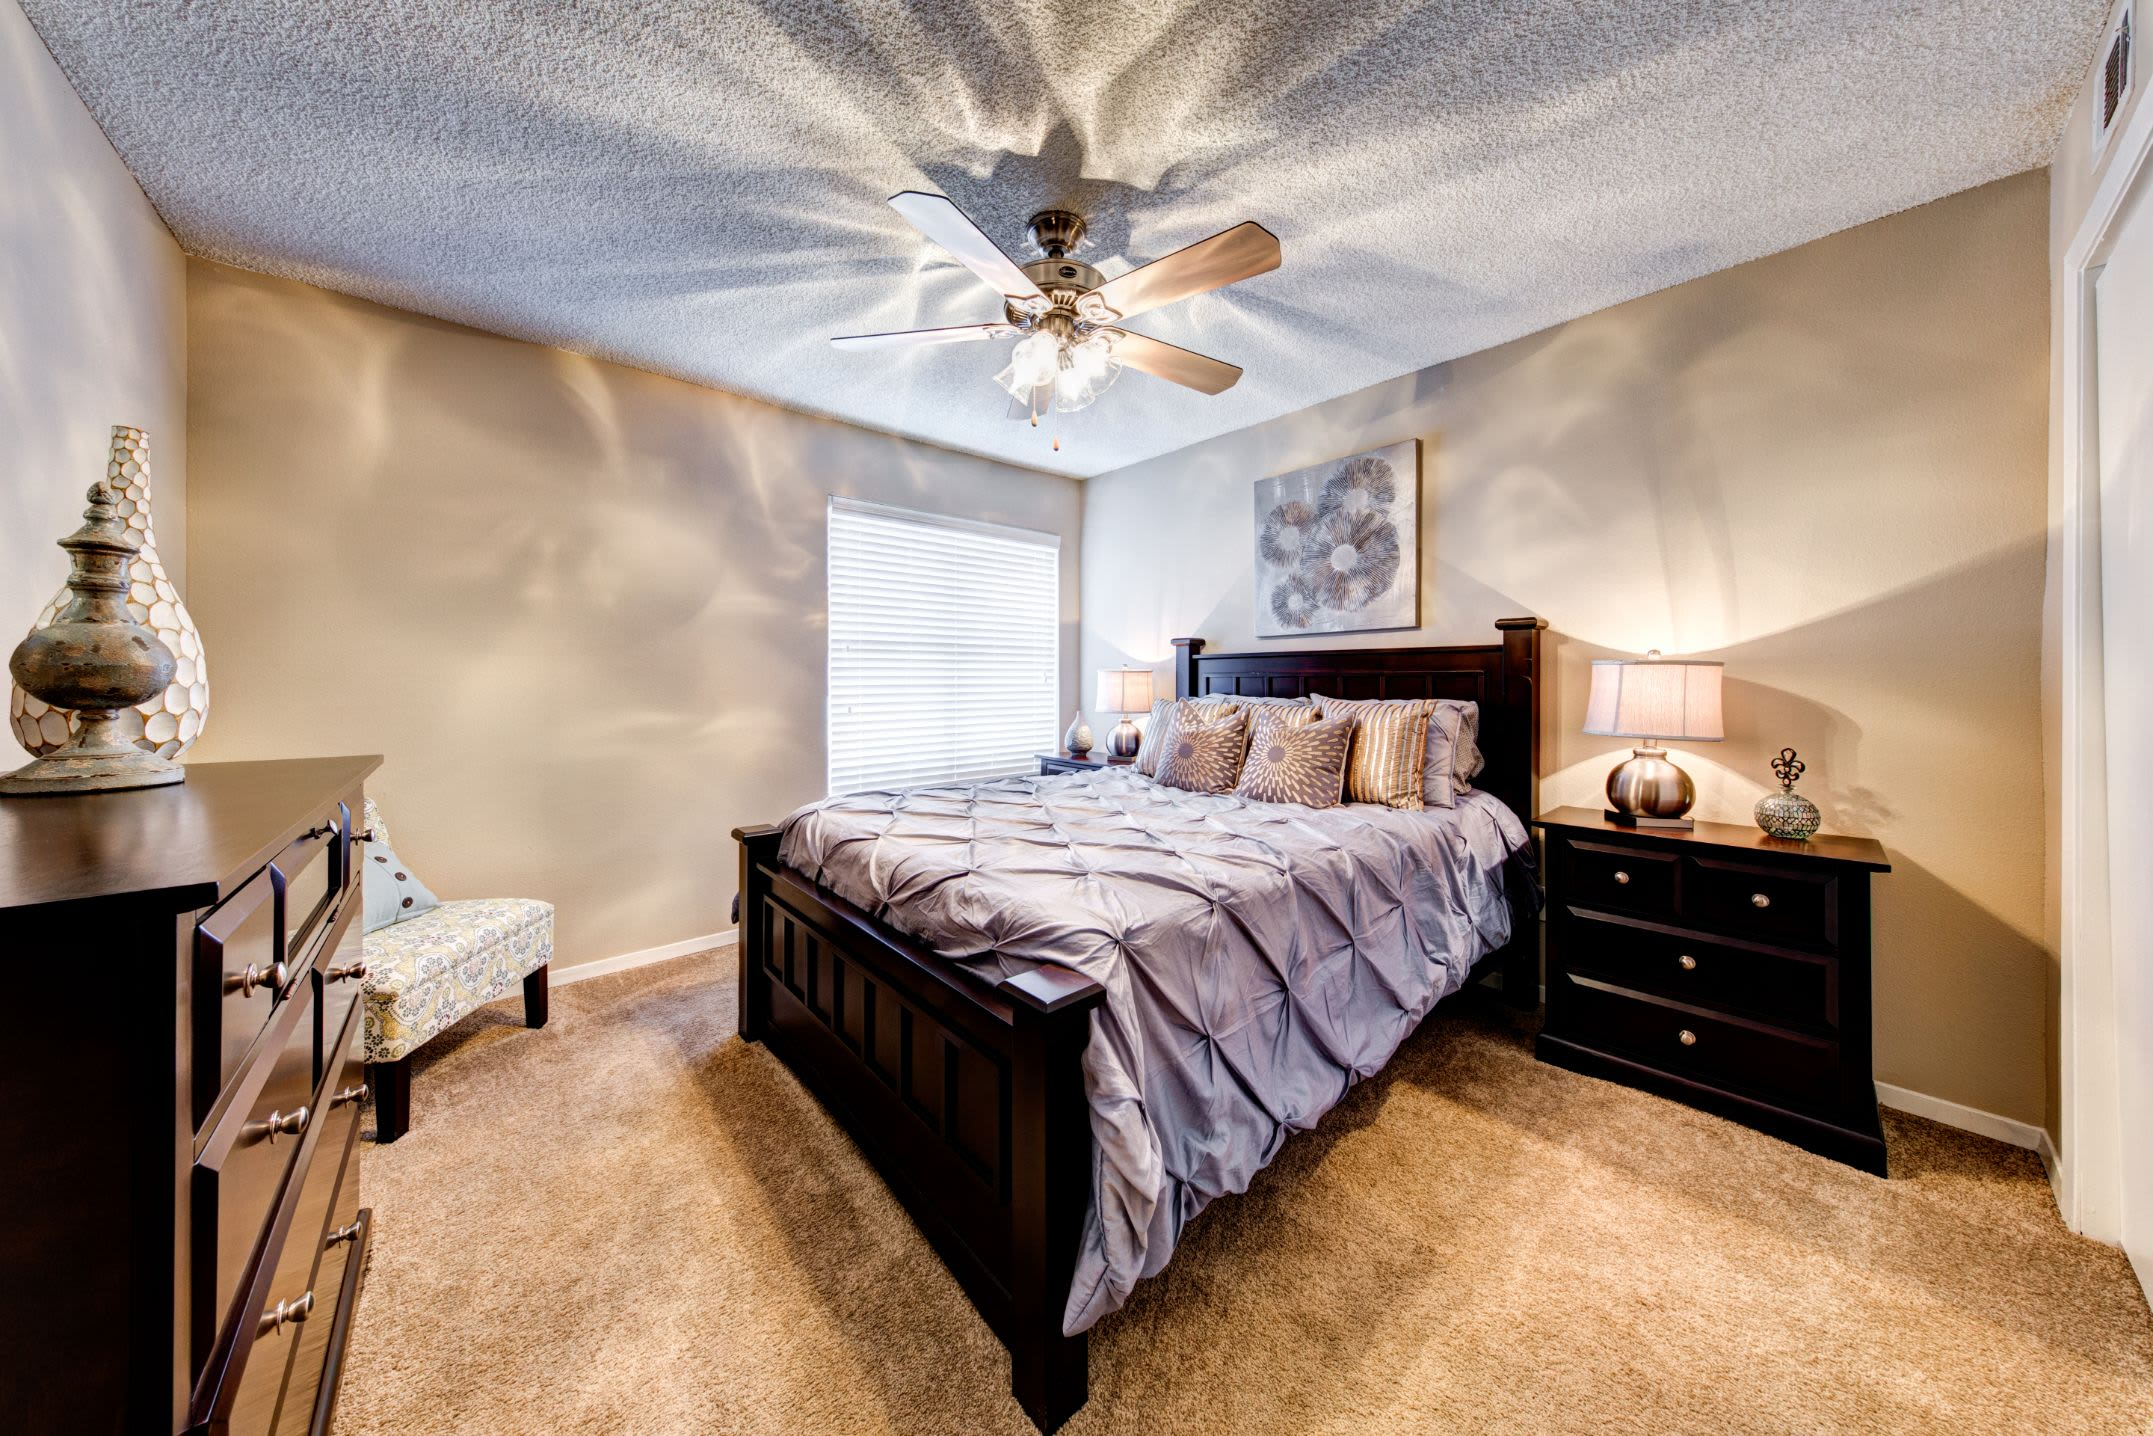 Bedroom with a ceiling fan at The Park at Flower Mound in Flower Mound, Texas